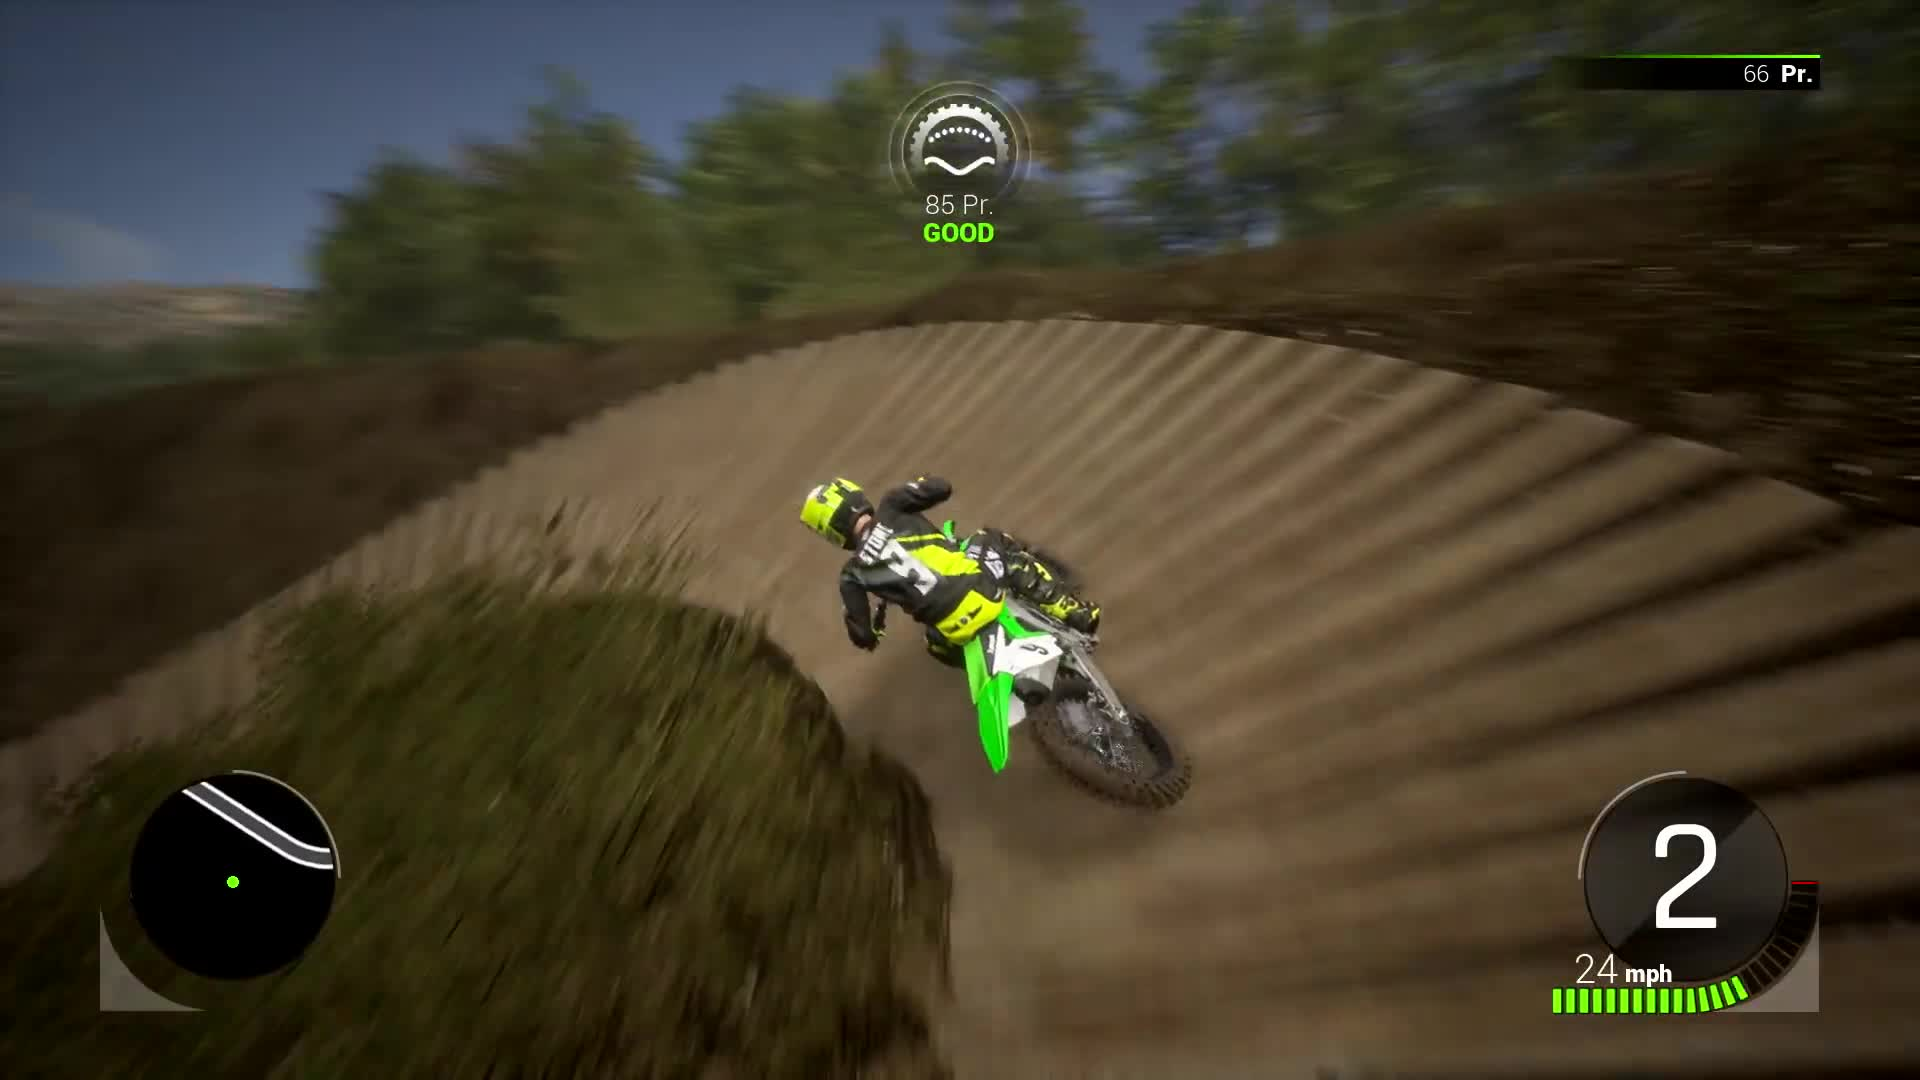 Monster Energy Supercross - The Official Videogame 2 - The Compound Area